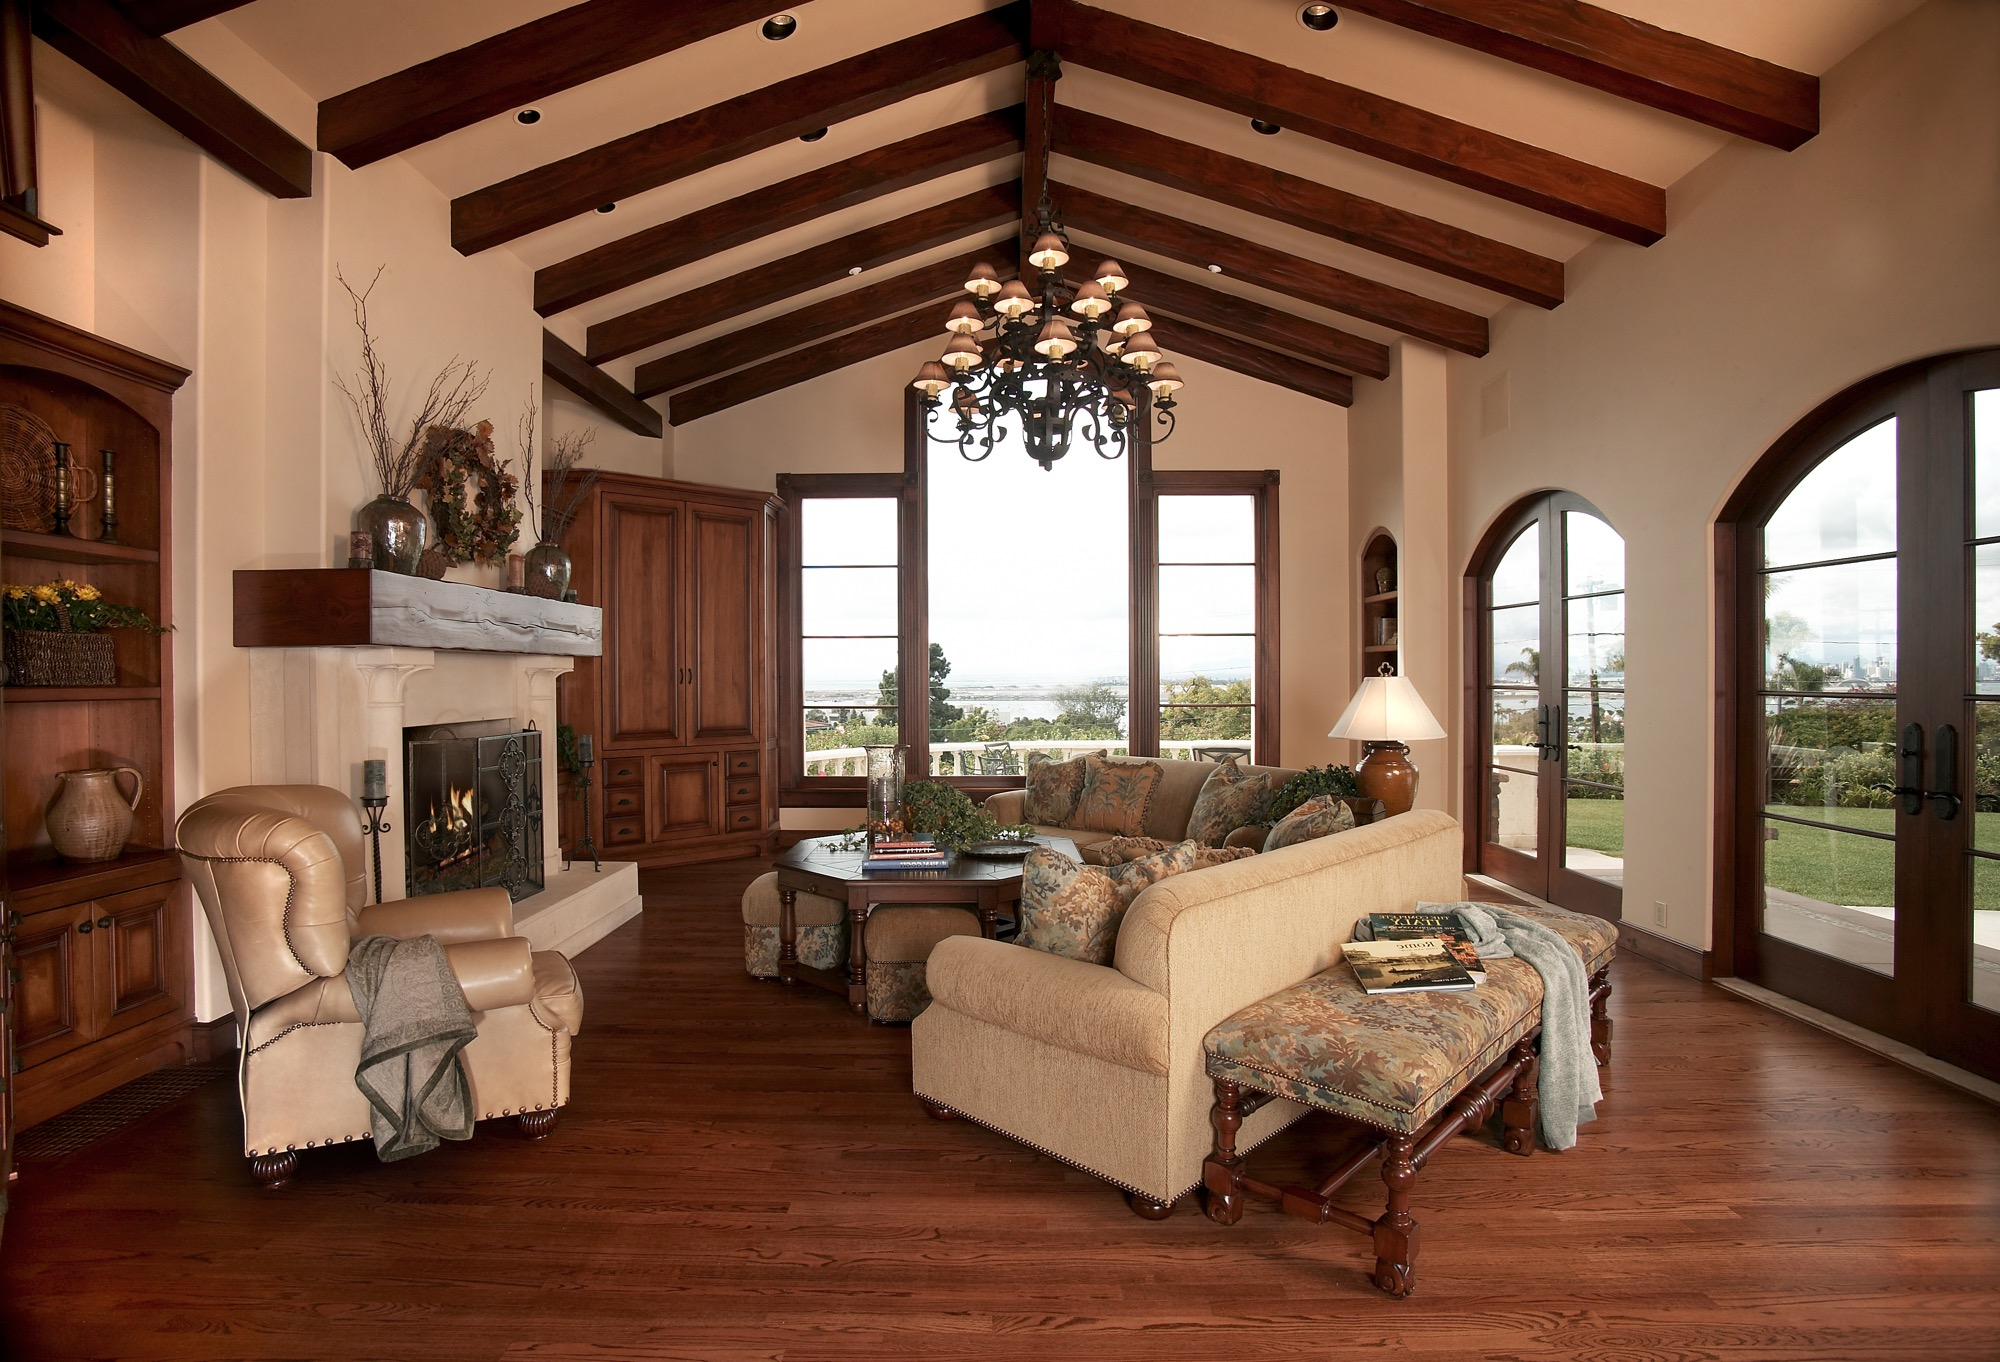 Italian Style Wooden Living Room With Exposed Wood Beams, Elegant Neutral Furniture And Hardwood Floor (Image 5 of 15)